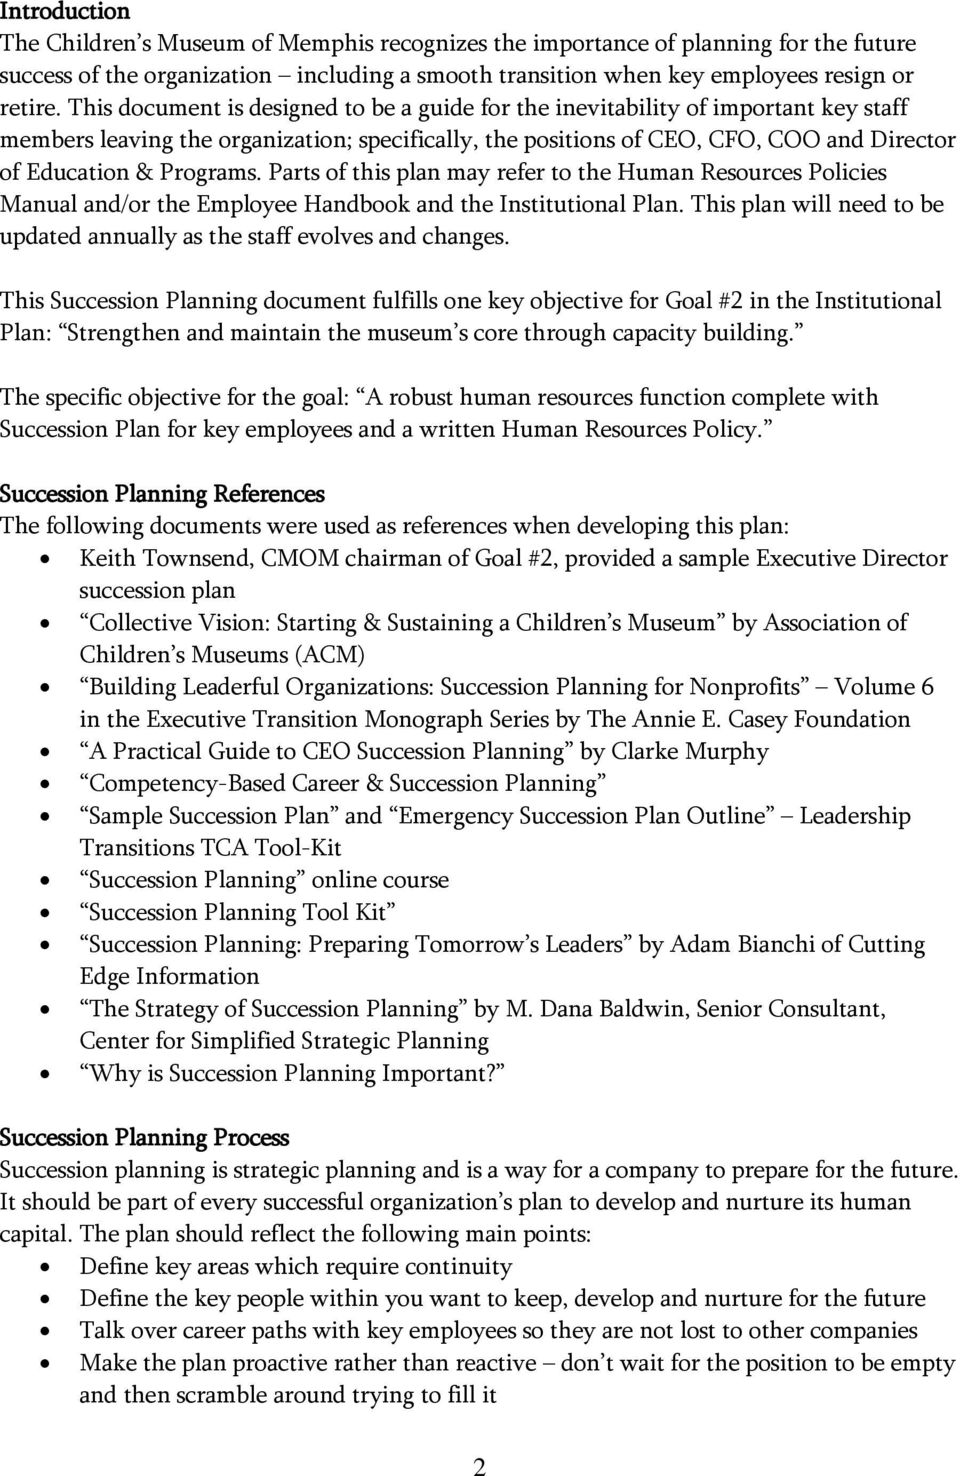 Programs. Parts of this plan may refer to the Human Resources Policies Manual and/or the Employee Handbook and the Institutional Plan.